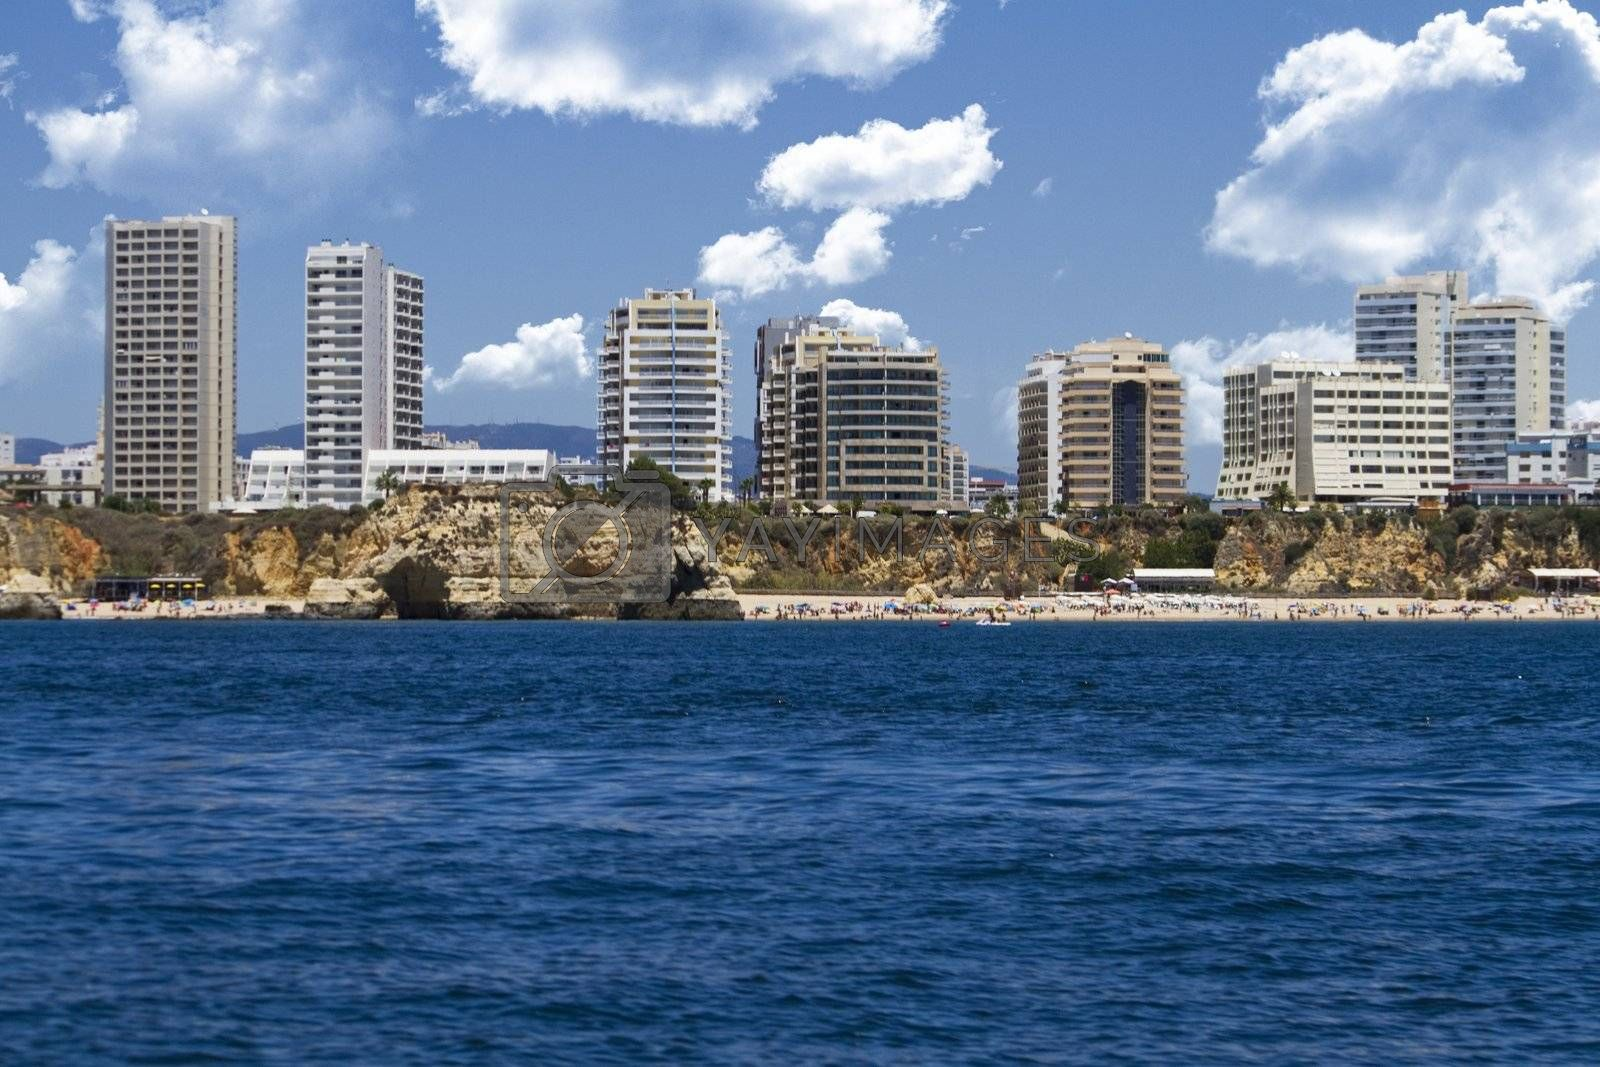 Wonderful view of the beautiful coastline with buildings of the Algarve, Portugal.